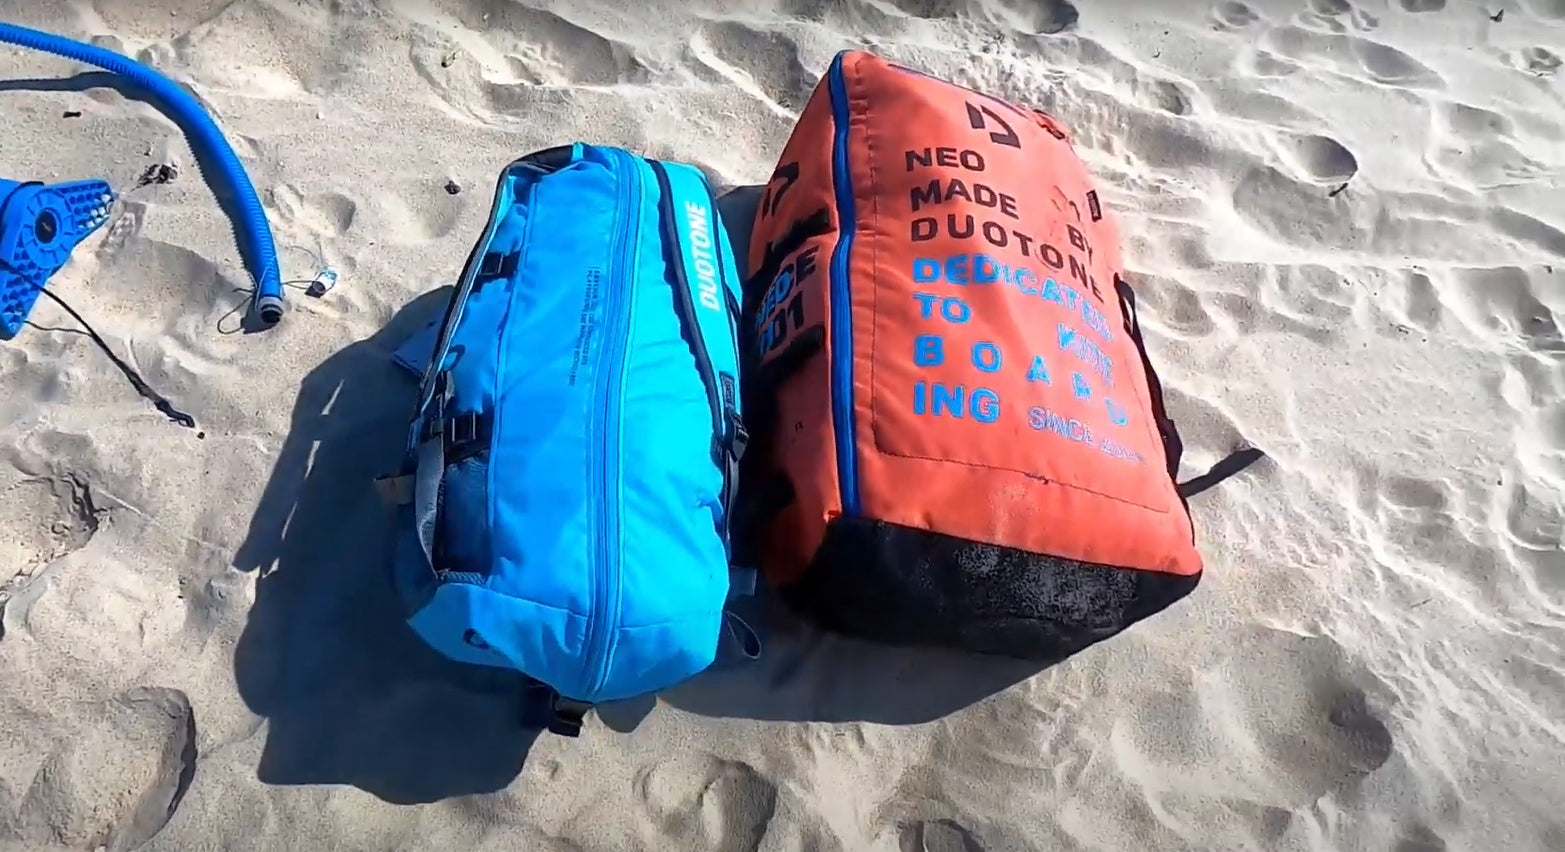 Kite Review - Duotone Neo Bag Comparison 2021 vs 2020